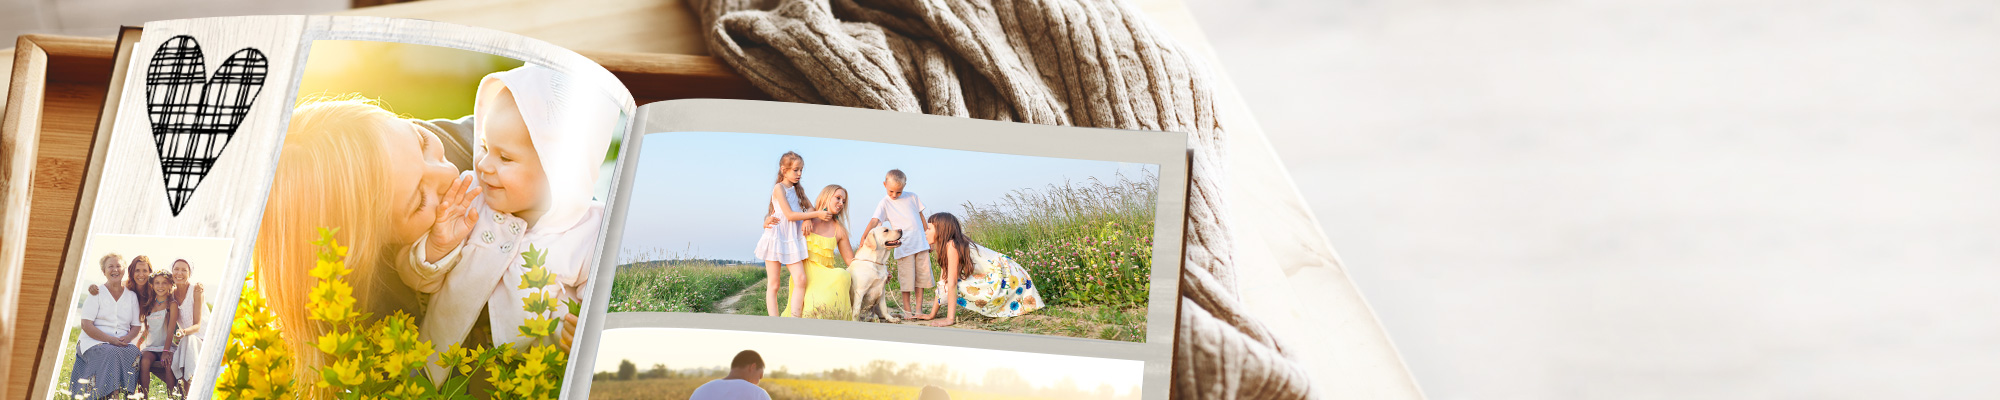 Personalised Photo Books from just £5.99